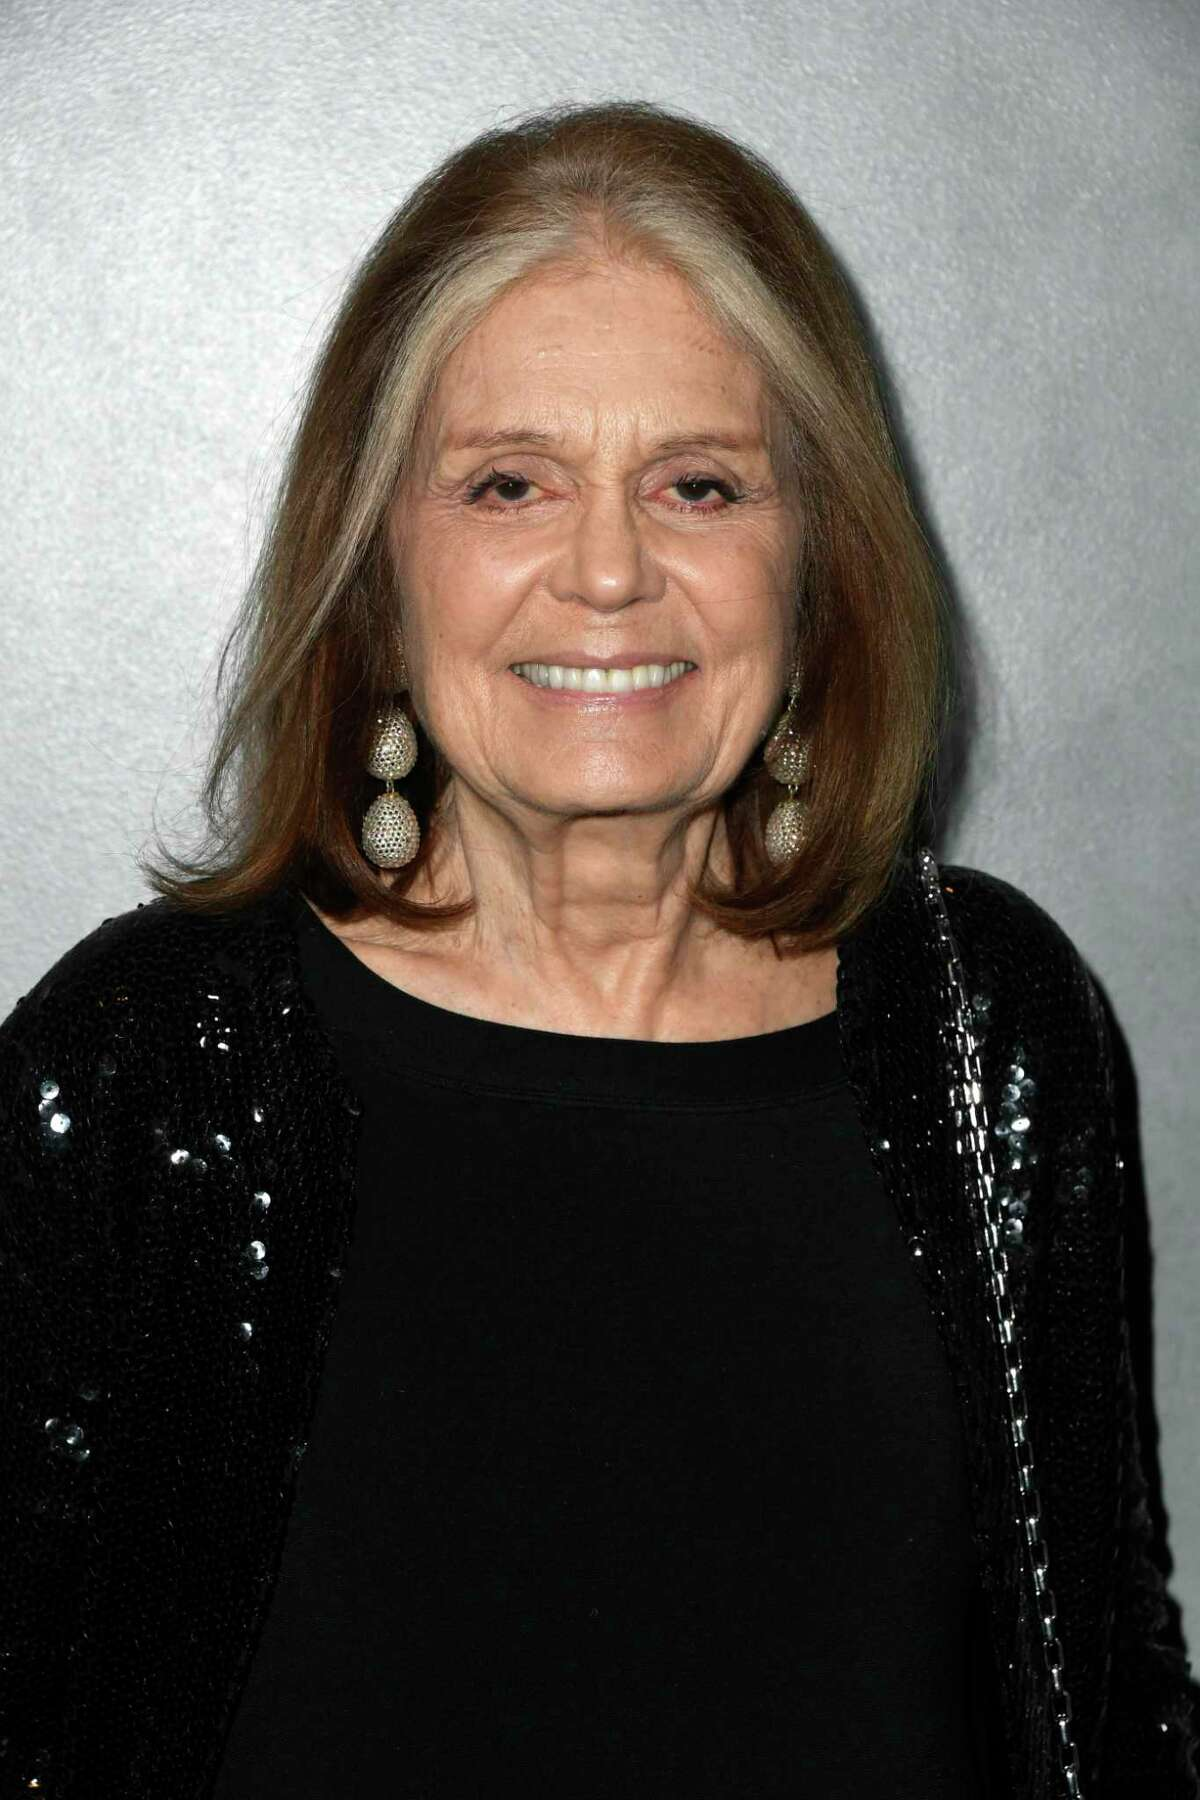 """Journalist and feminist Gloria Steinem, shown in this Oct. 12, 2019, photo, is one of several speakers who will be at Prairie View A&M University in November 2019 for a symposium focused on the contribution of black women in politics and cultural discourse as it relates to author Paul Giddings' groundbreaking book, """"When and Where I Enter."""""""